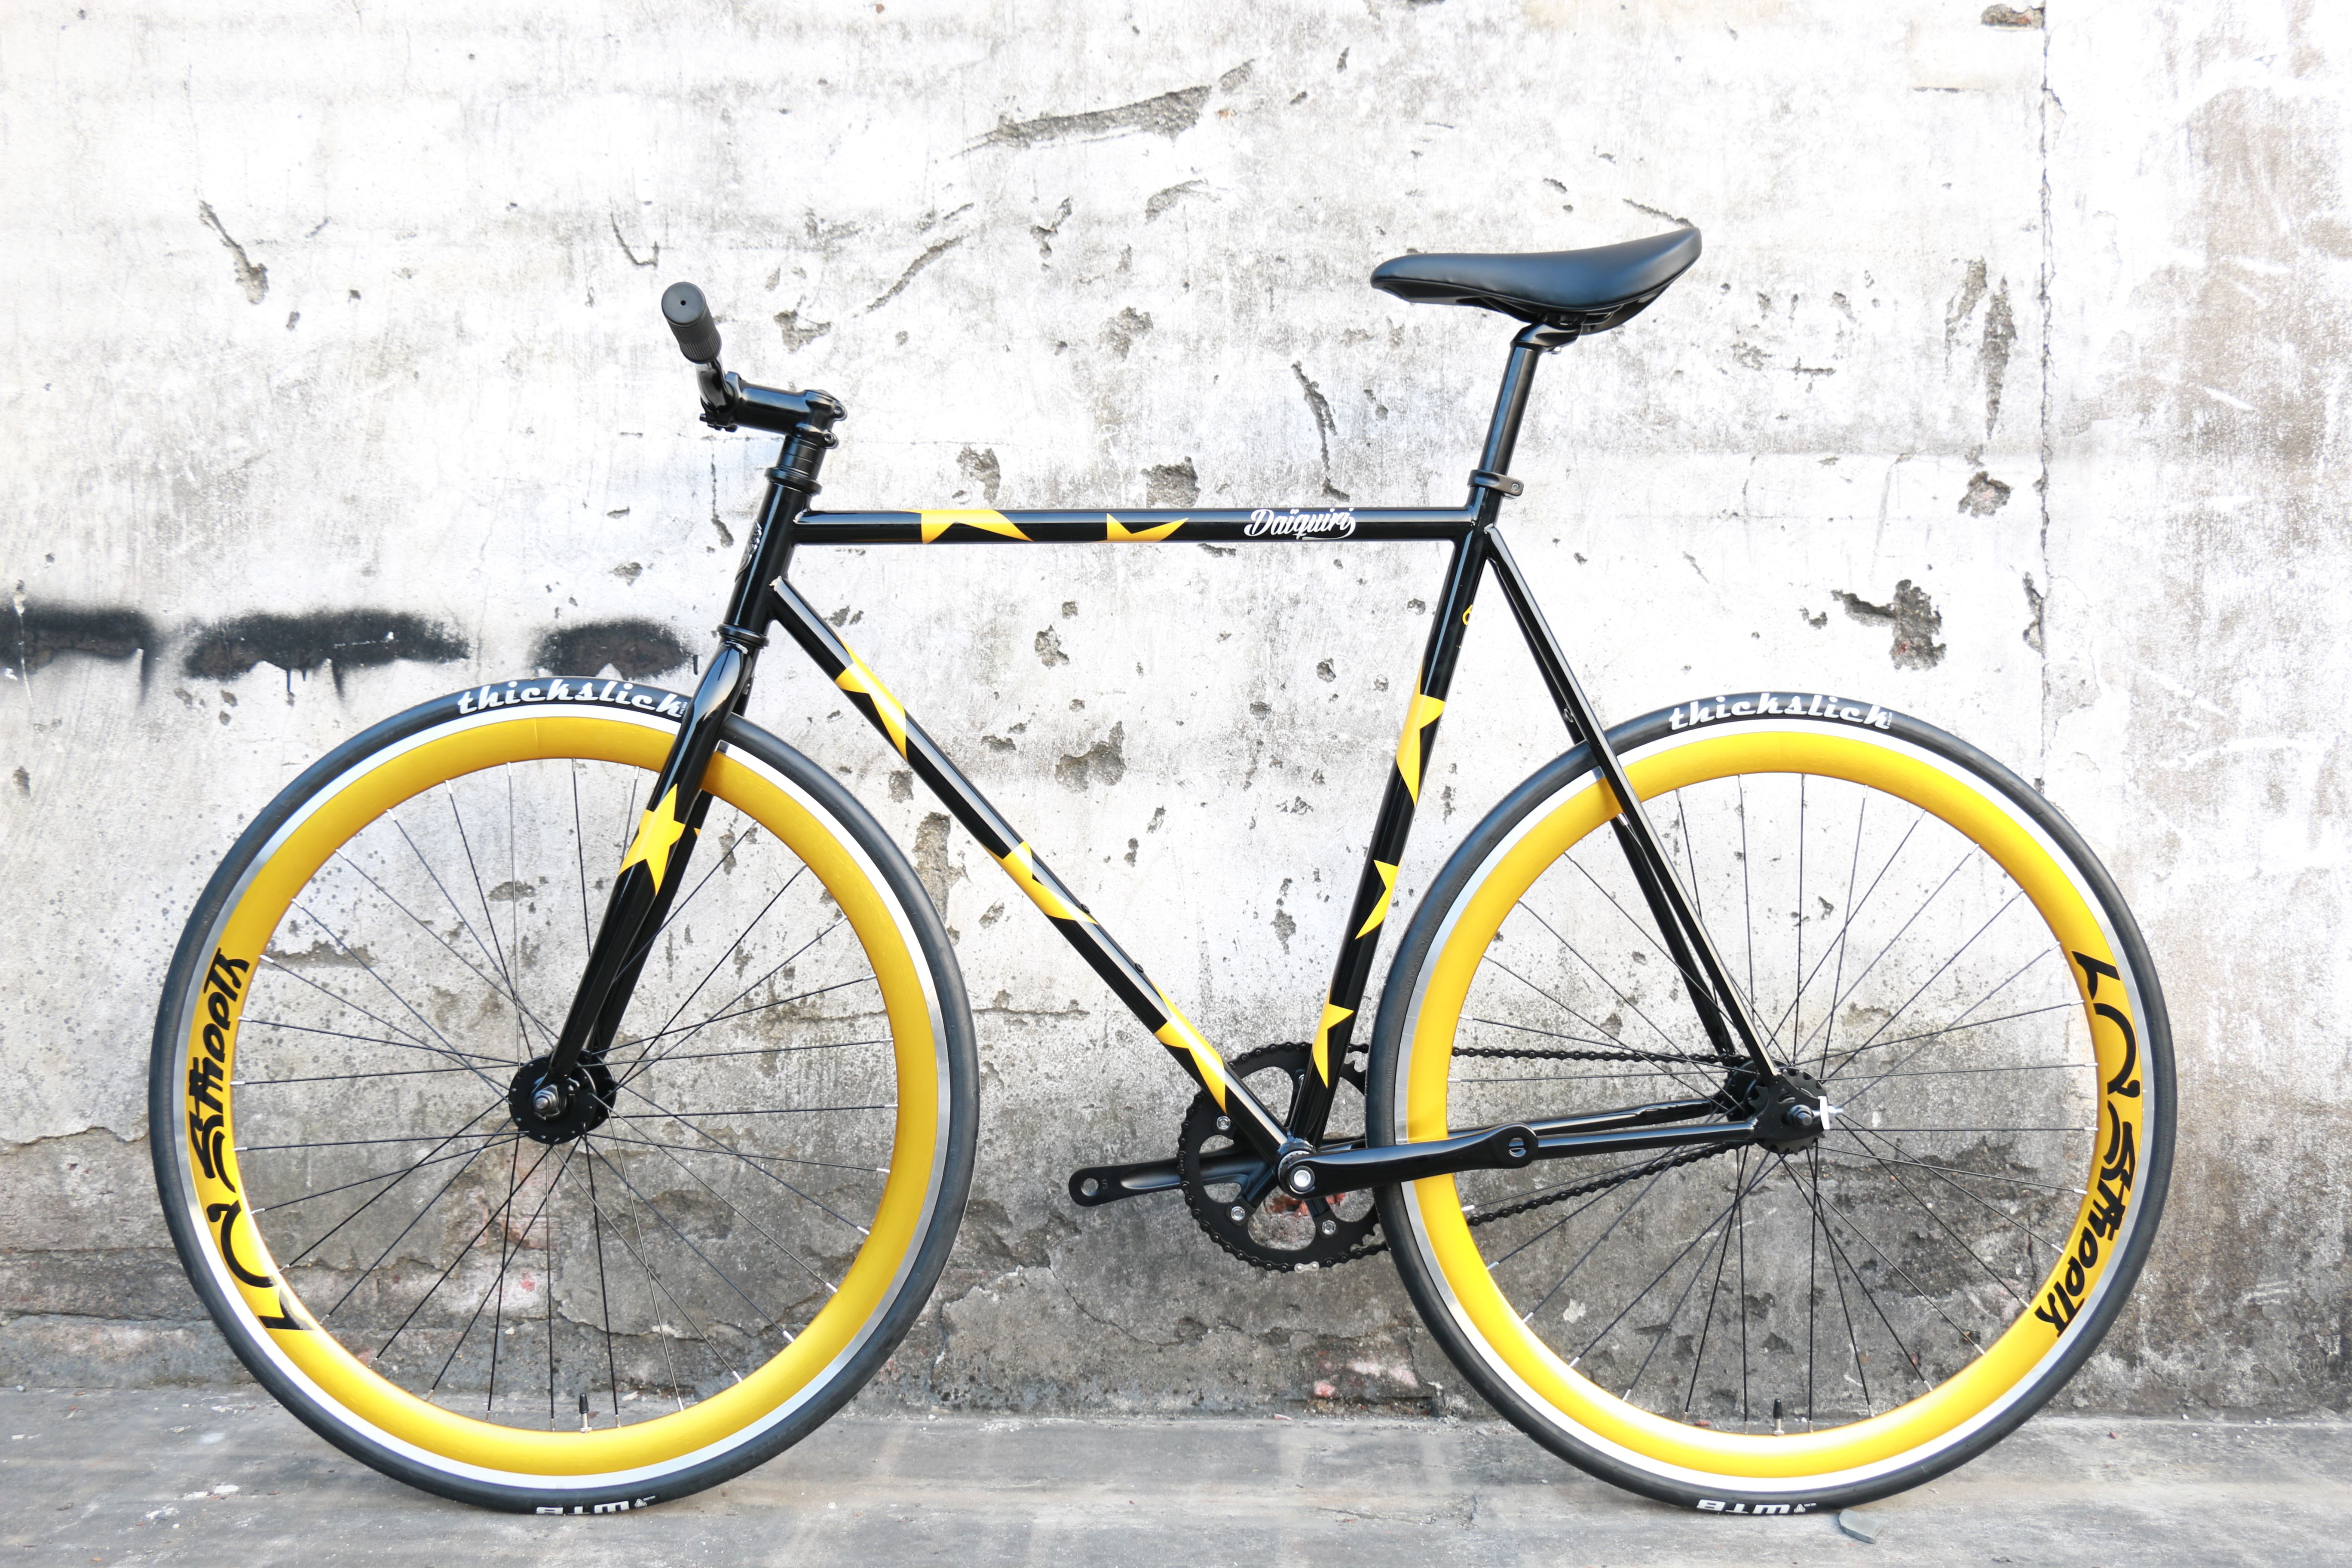 5720b793e17 Daiquiri GOLD STAR Limited Edition Fixed Gear Bike Fixie Single Speed  Bicycle M